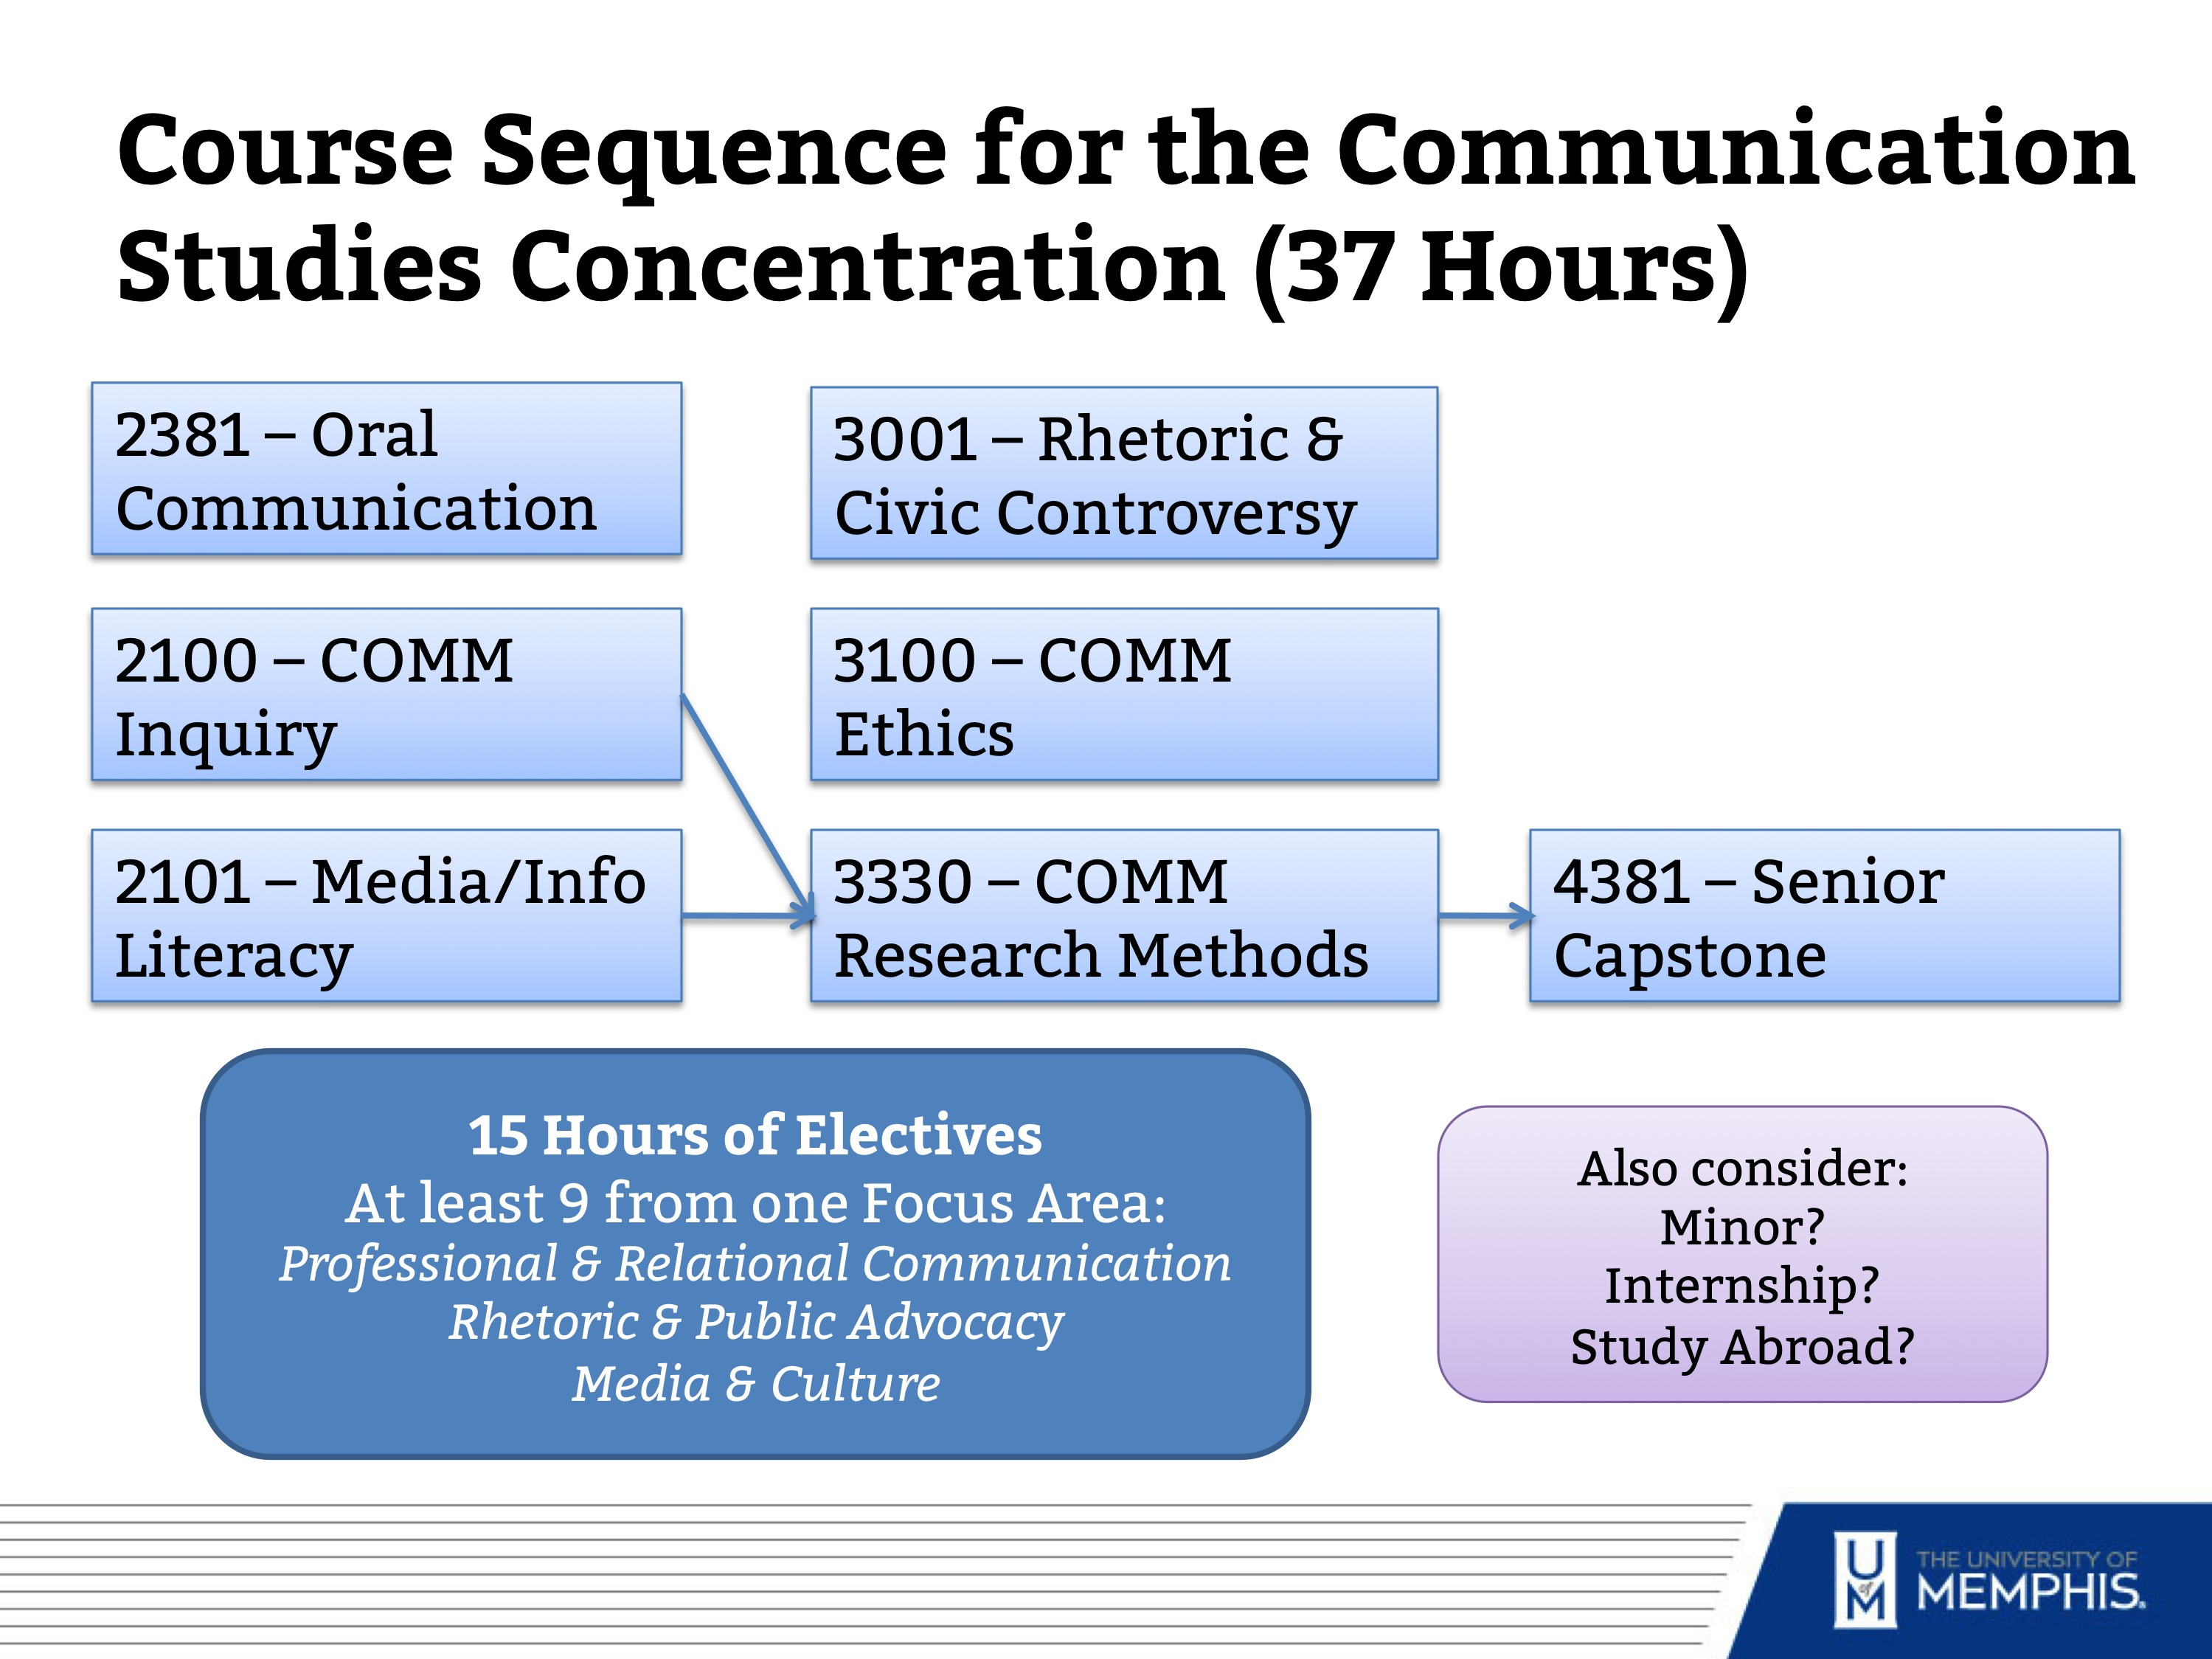 CMST Course Sequence